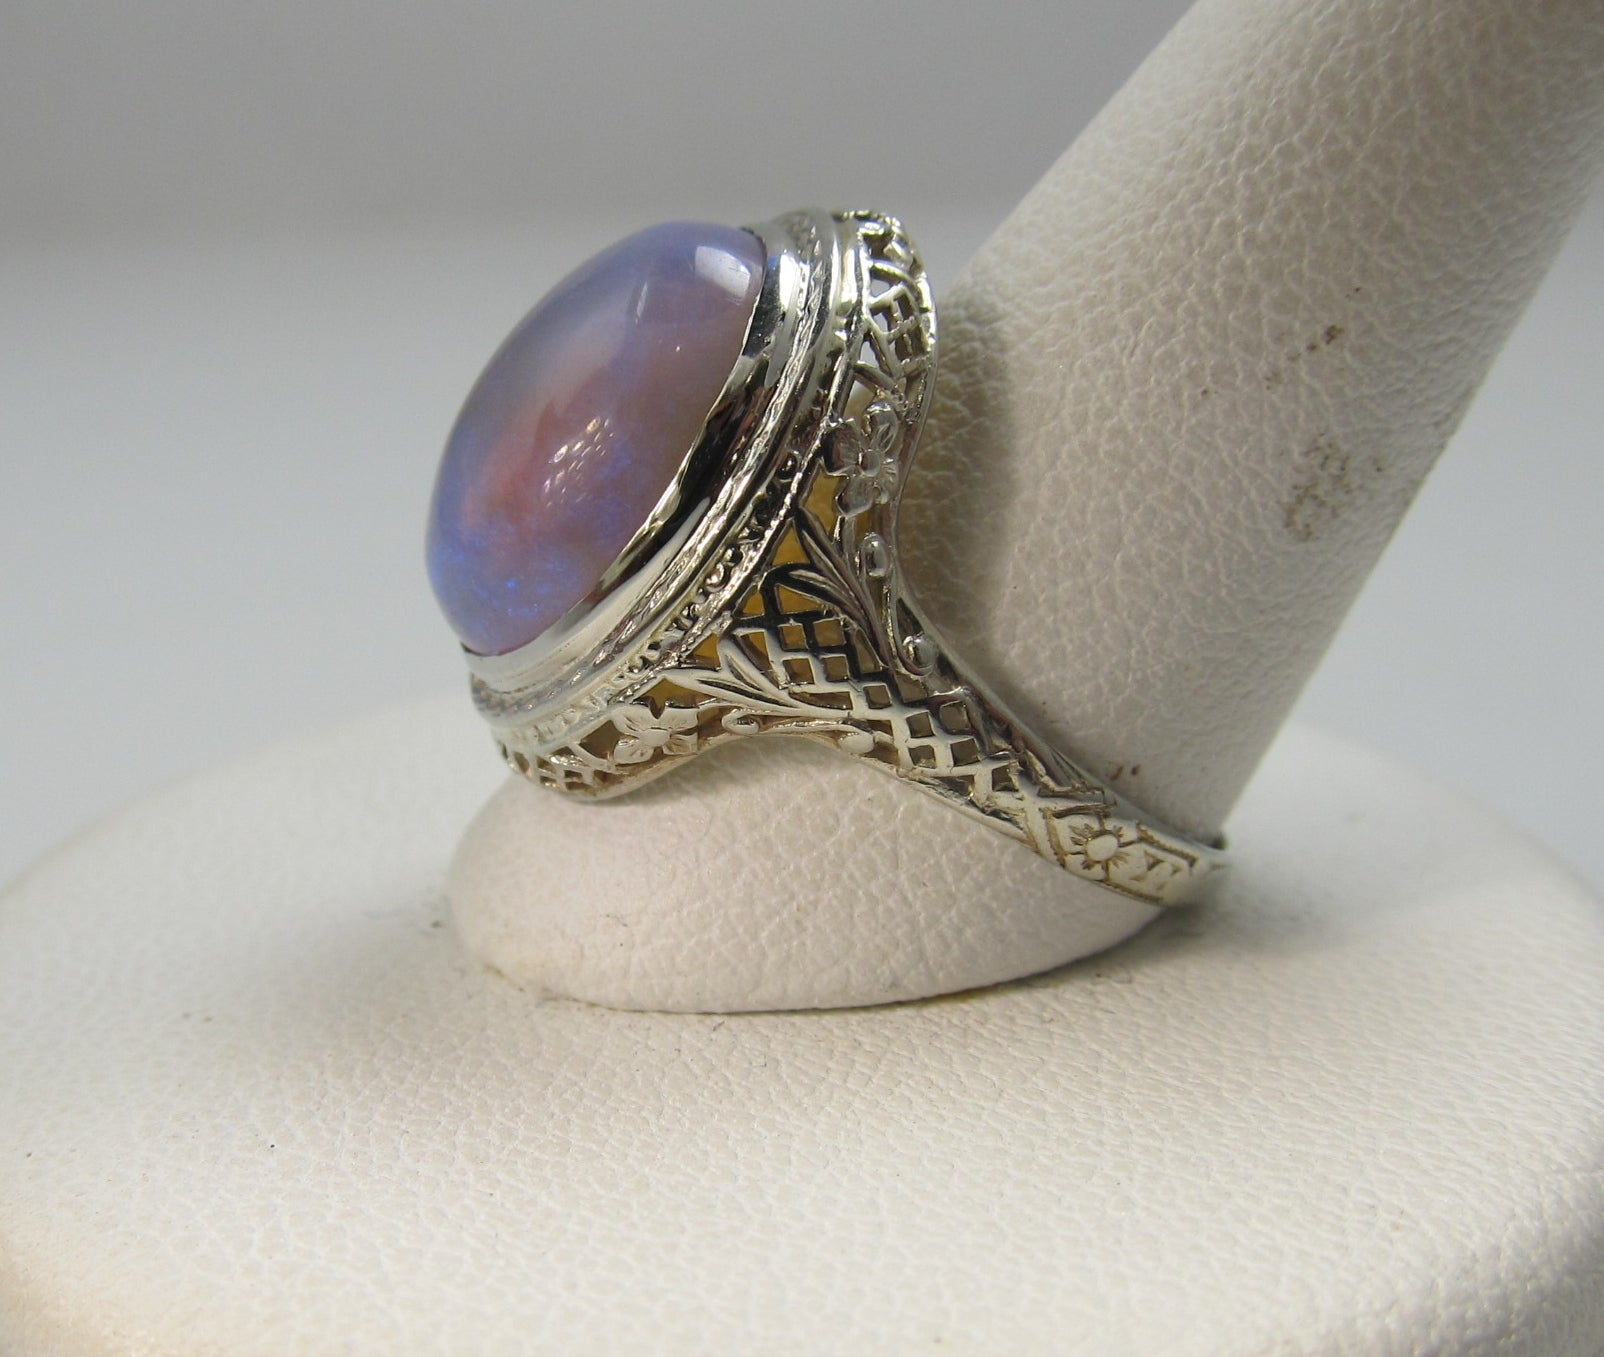 14k White Gold Filigree Ring With A 5.50ct Opal, Circa 1920